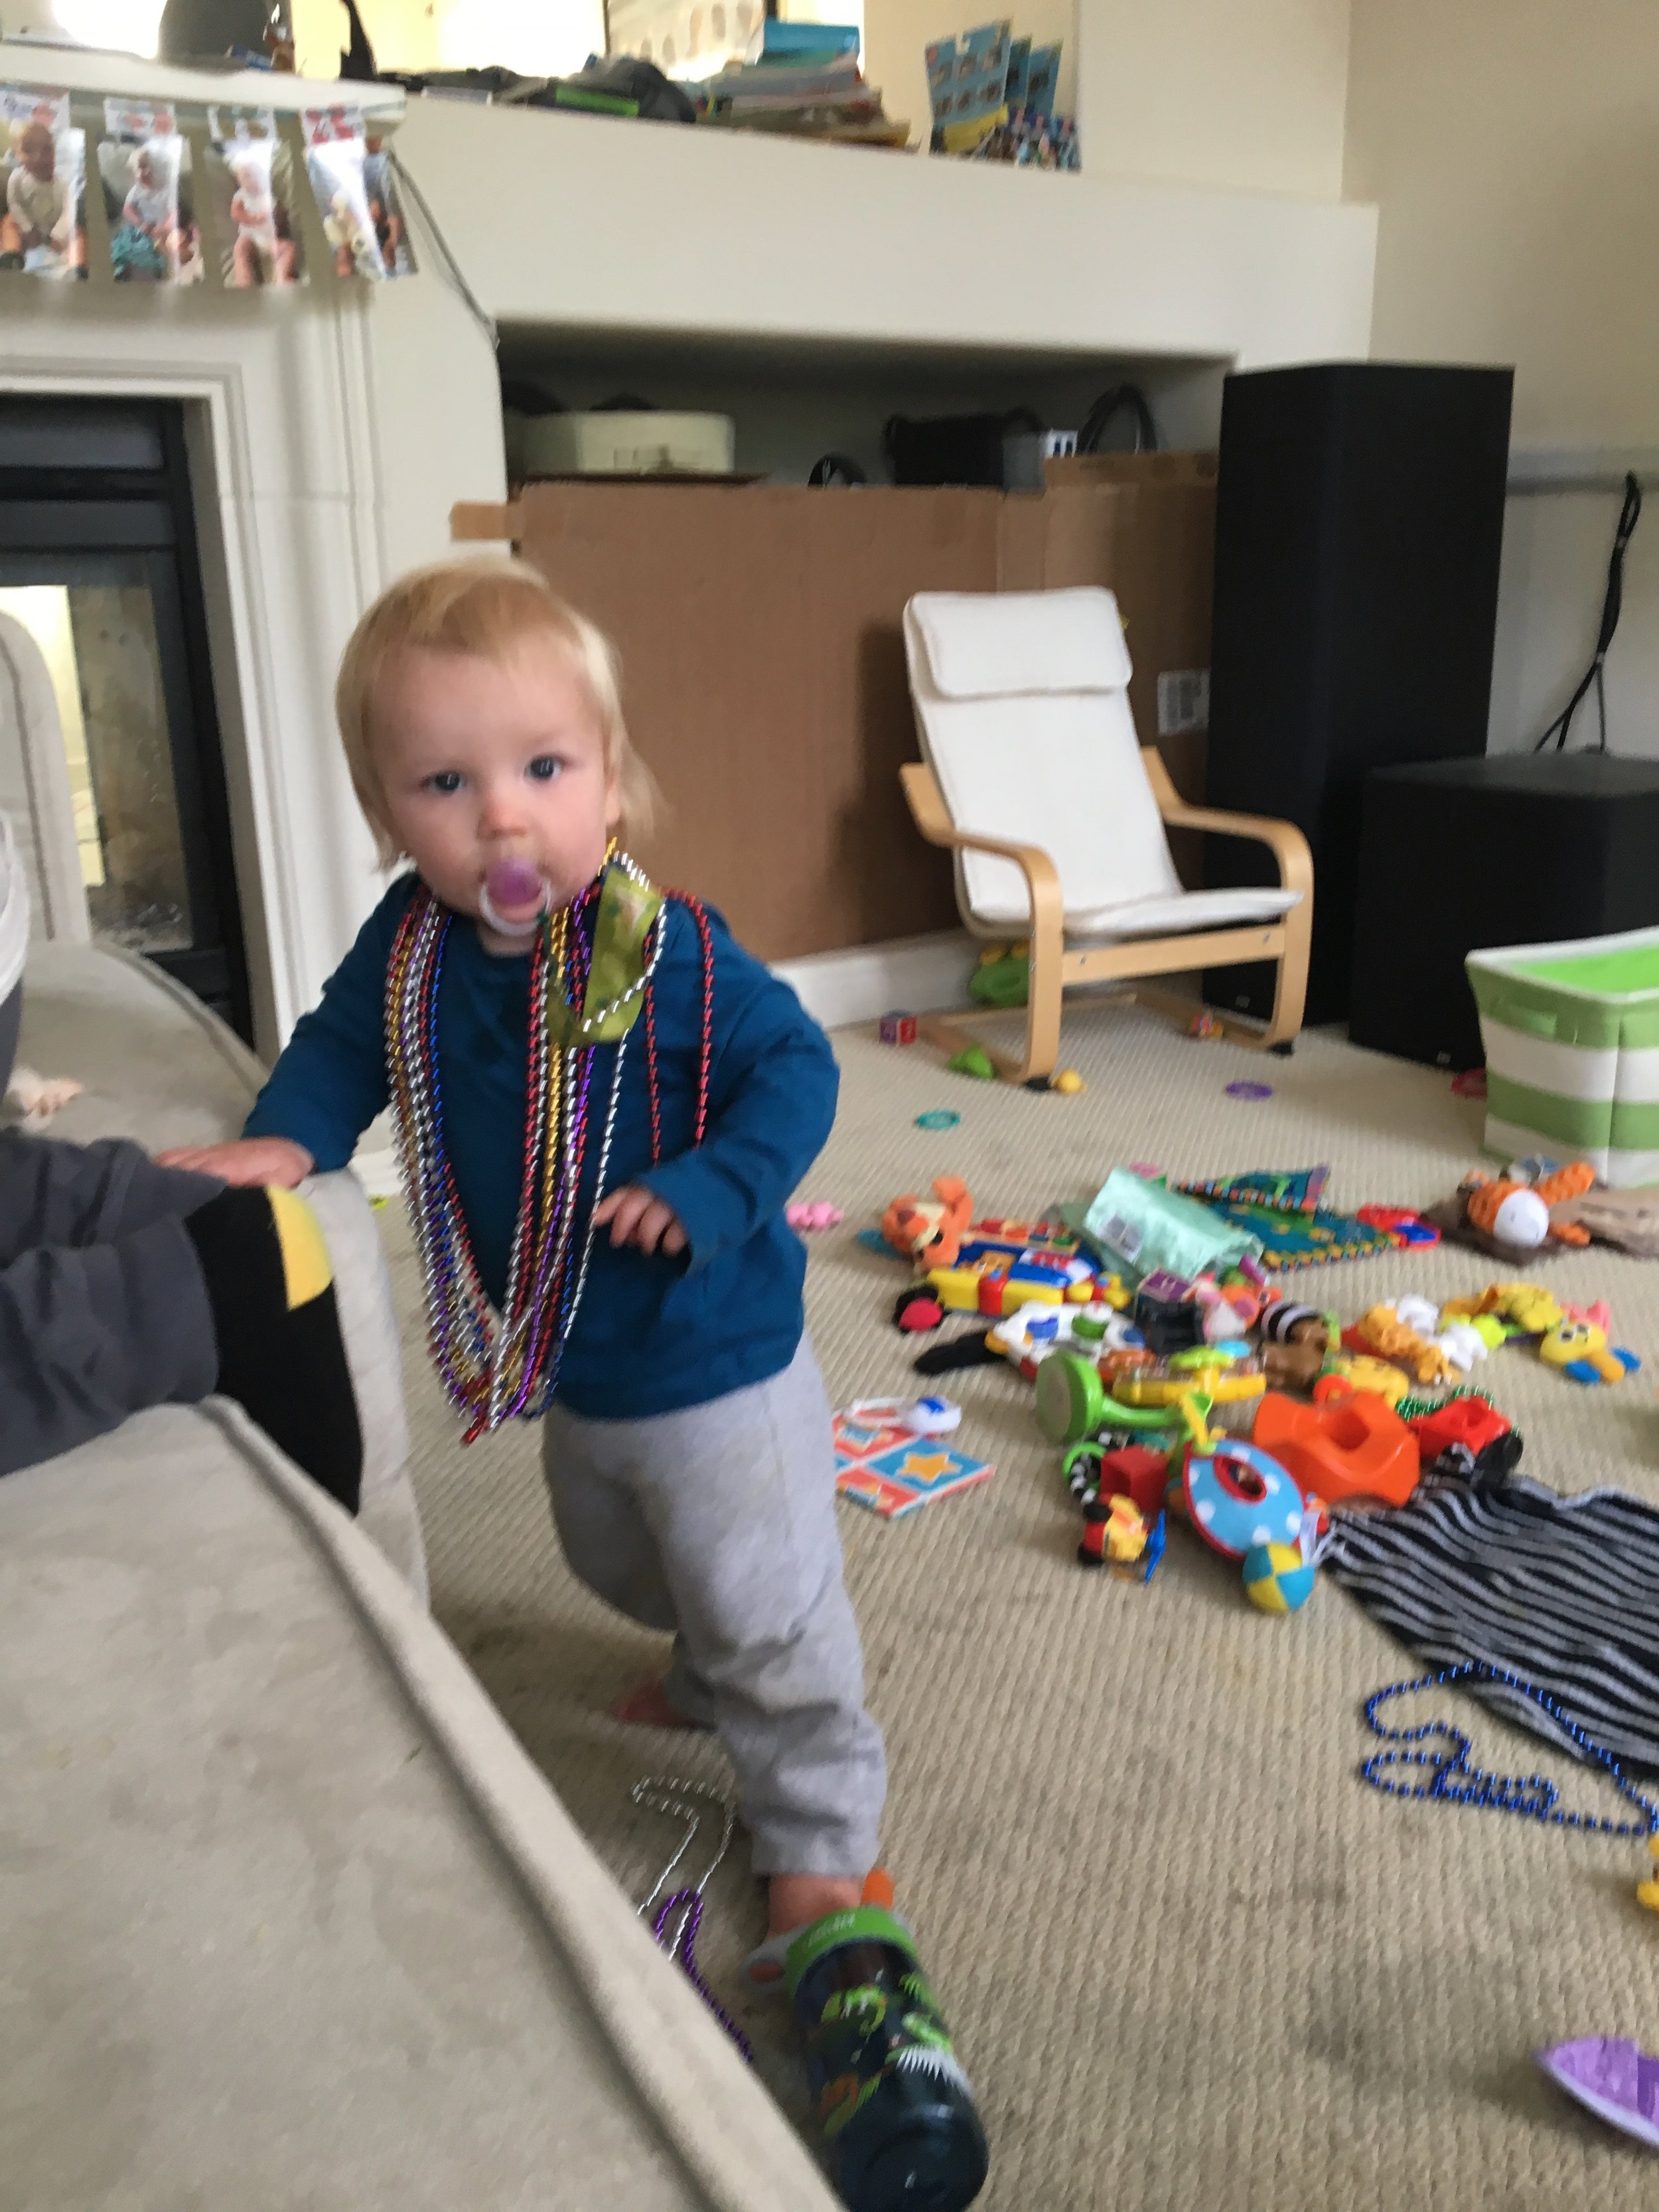 Wearing all the beads